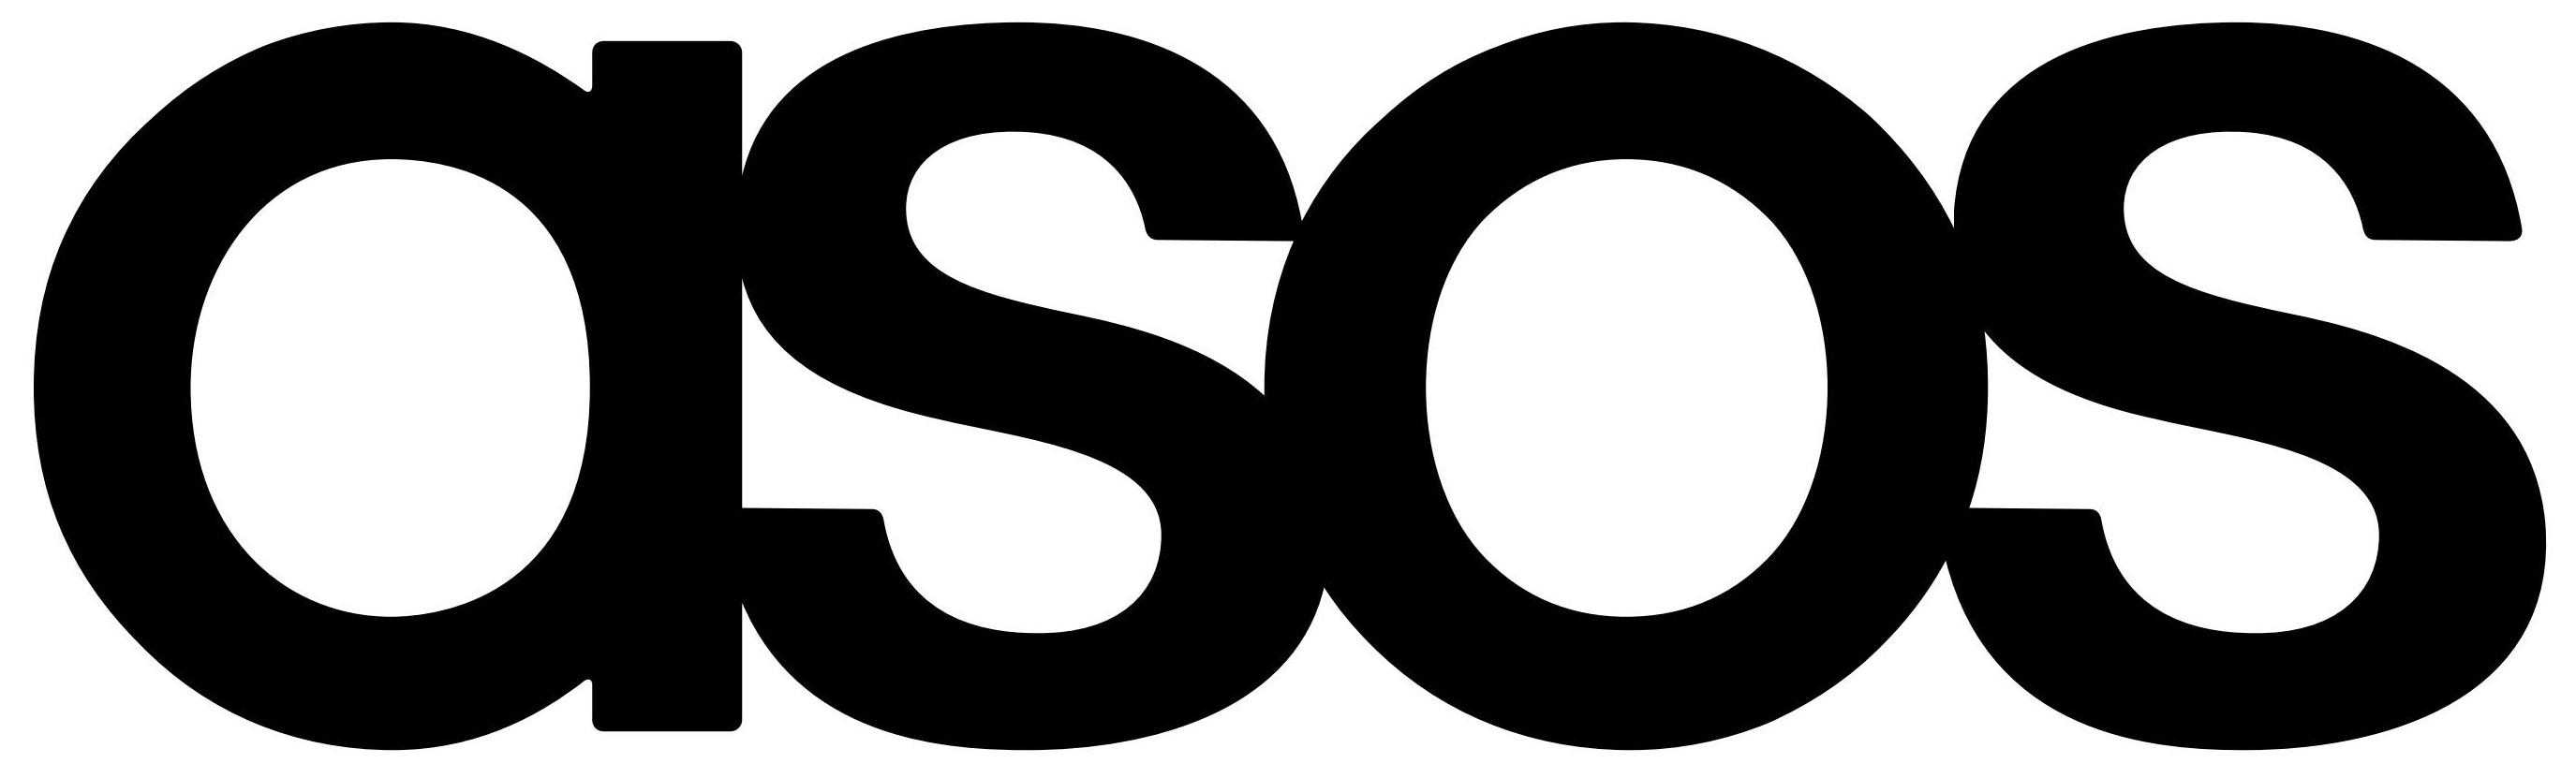 Asos Logo [PDF] Vector EPS Free Download, Logo, Icons, Brand Emblems.